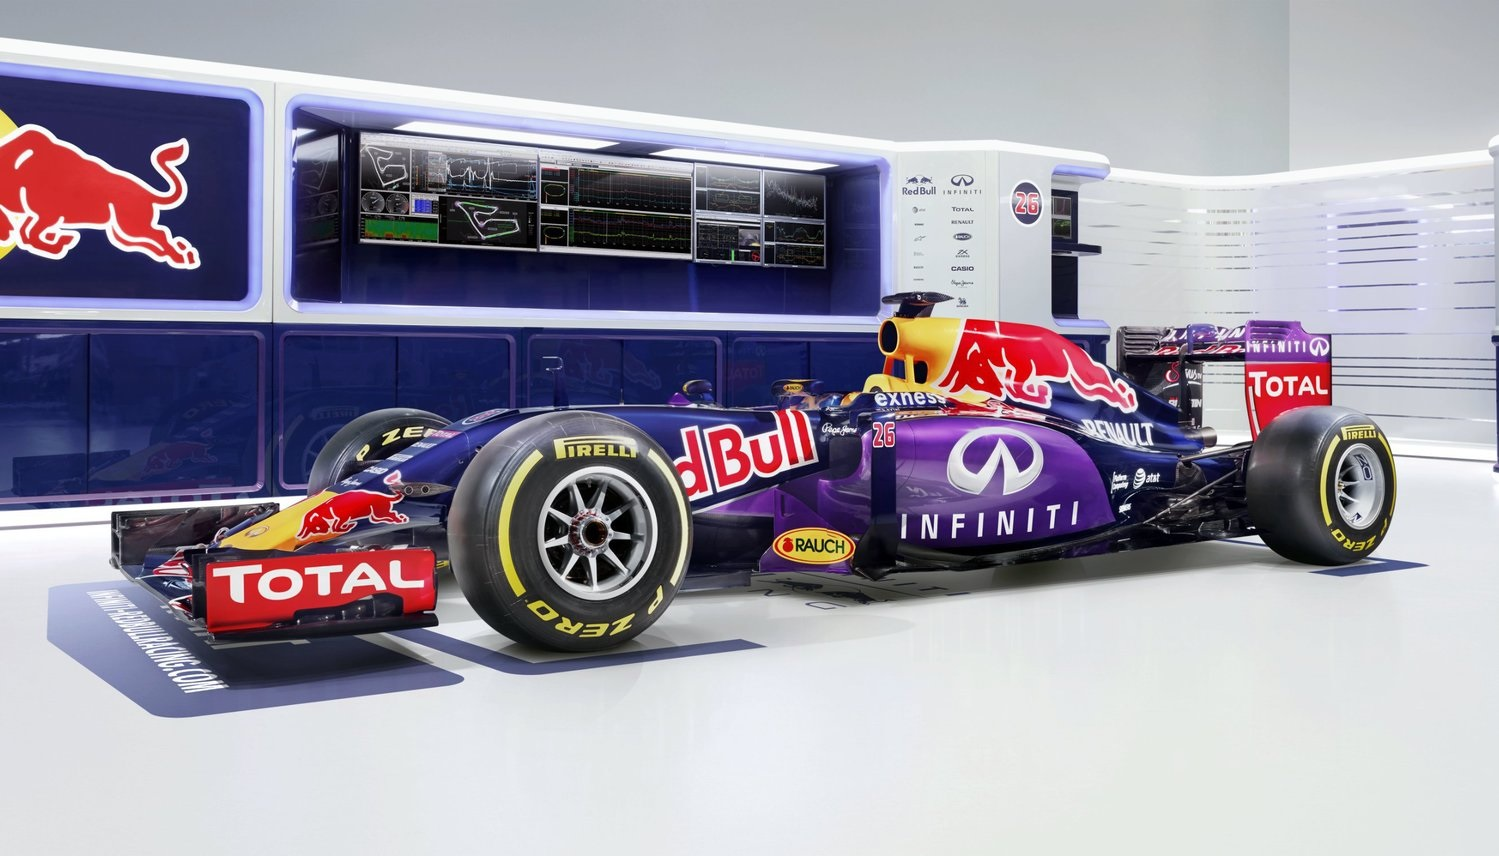 Red Bull Racing Will Ultimately Either Build Their Own Engine U2013 Or Do A  McLaren And Partner With Someone For An Exclusive Engine Supply Contract.